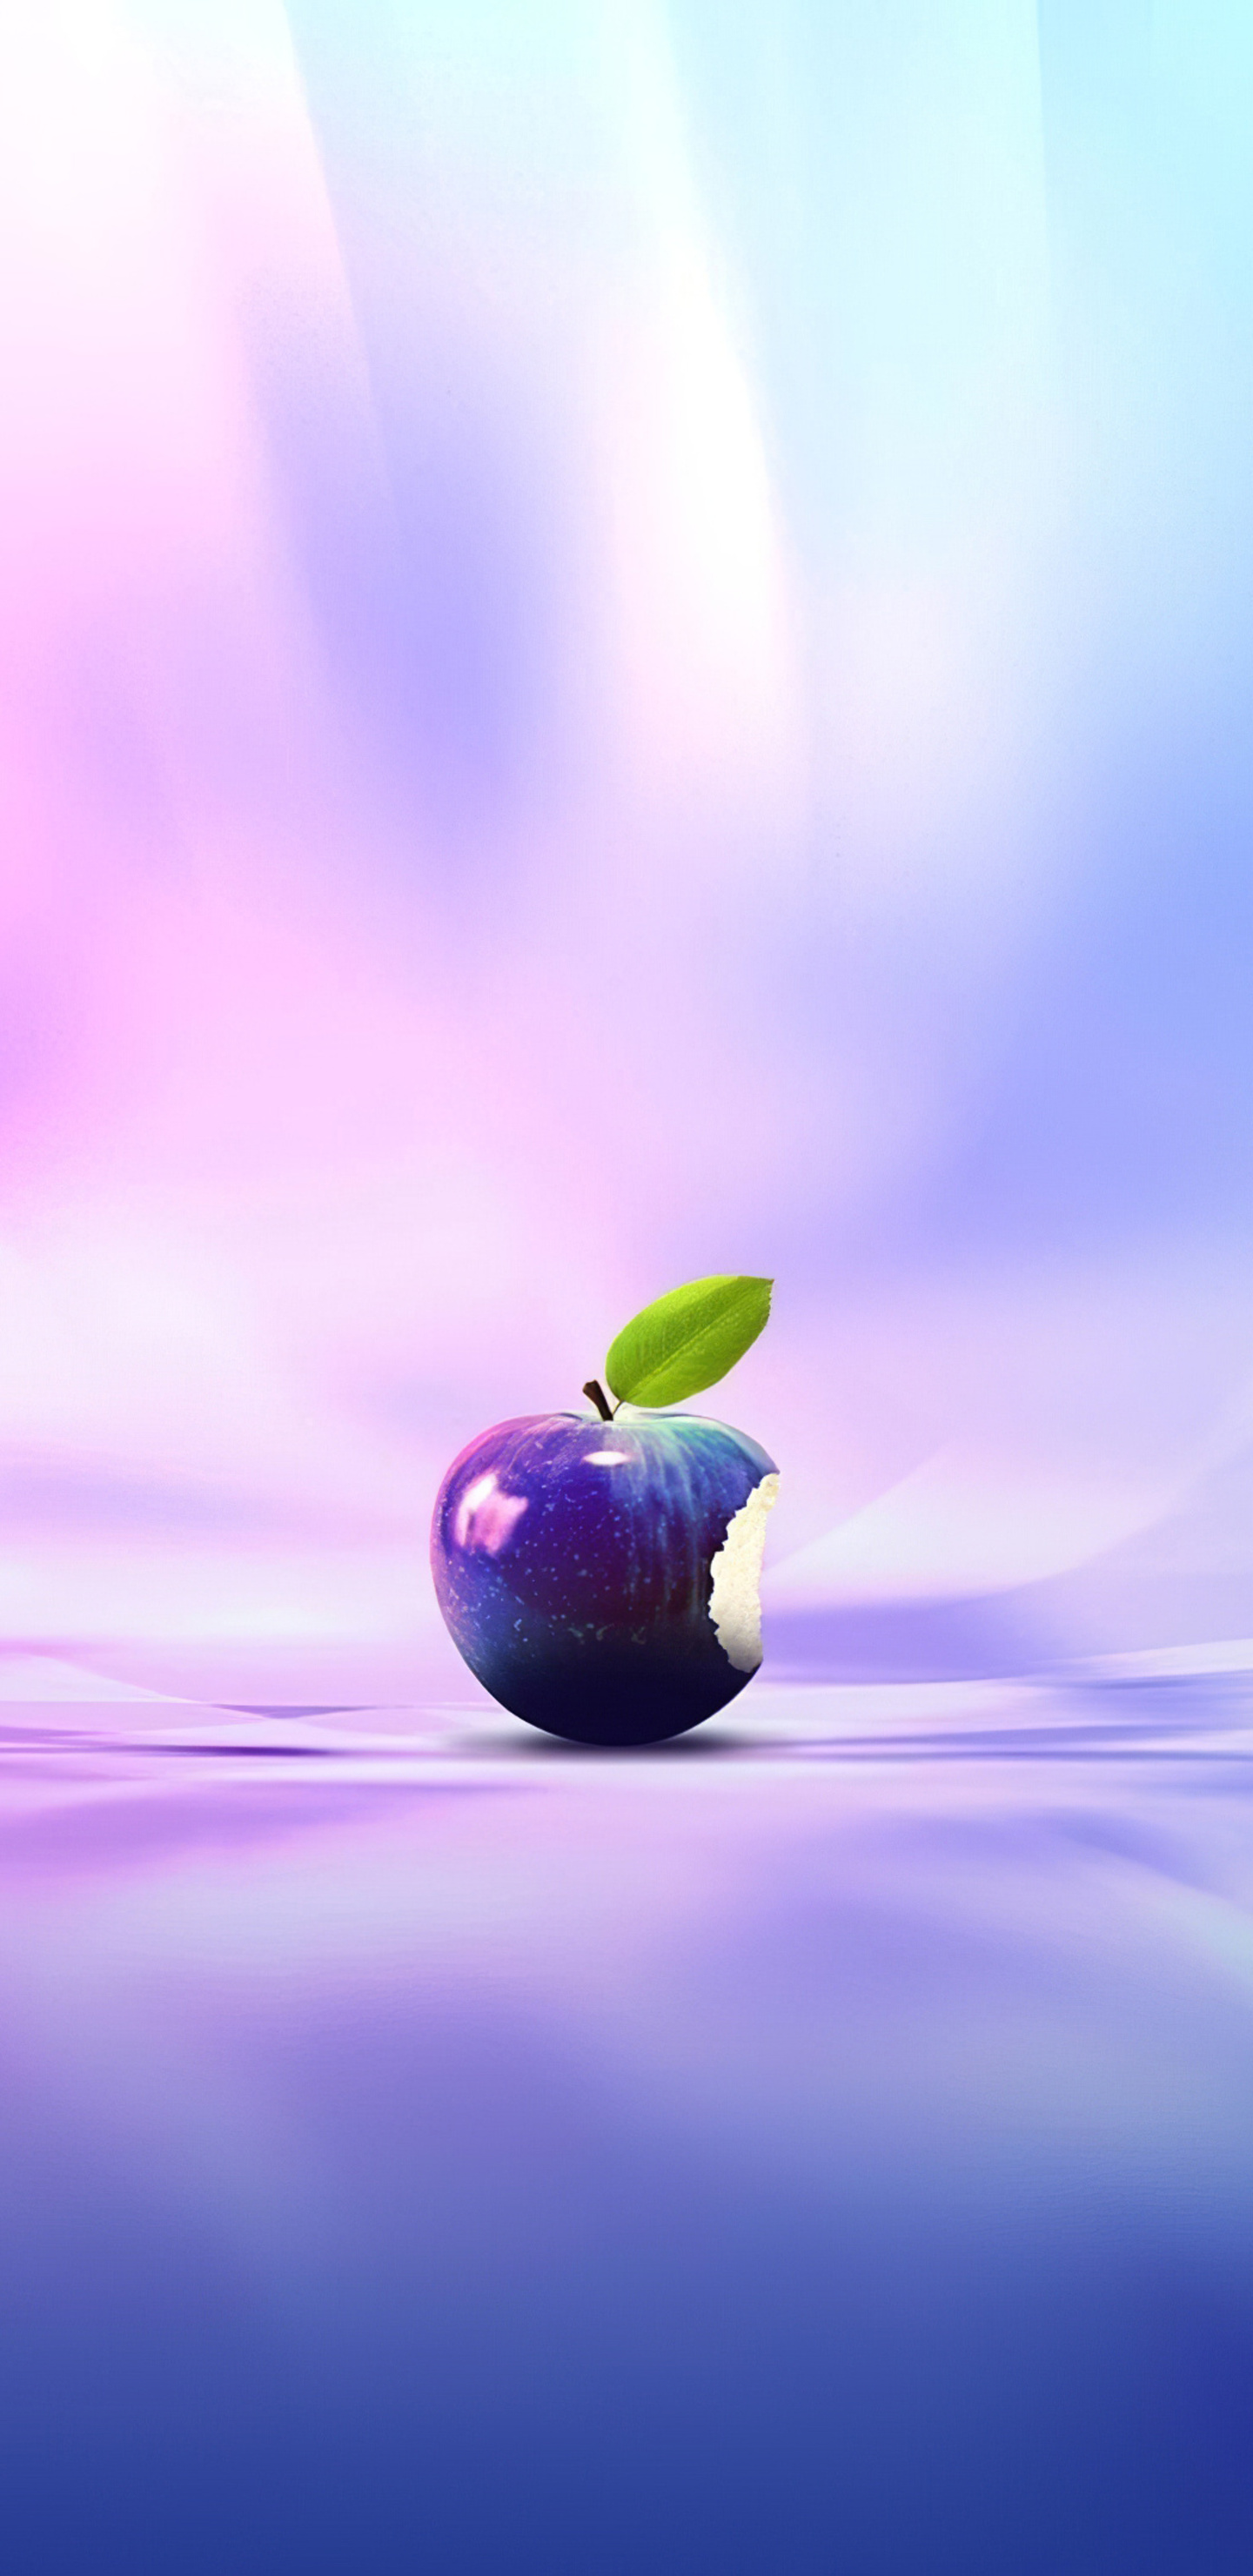 real apple logo 4k f5